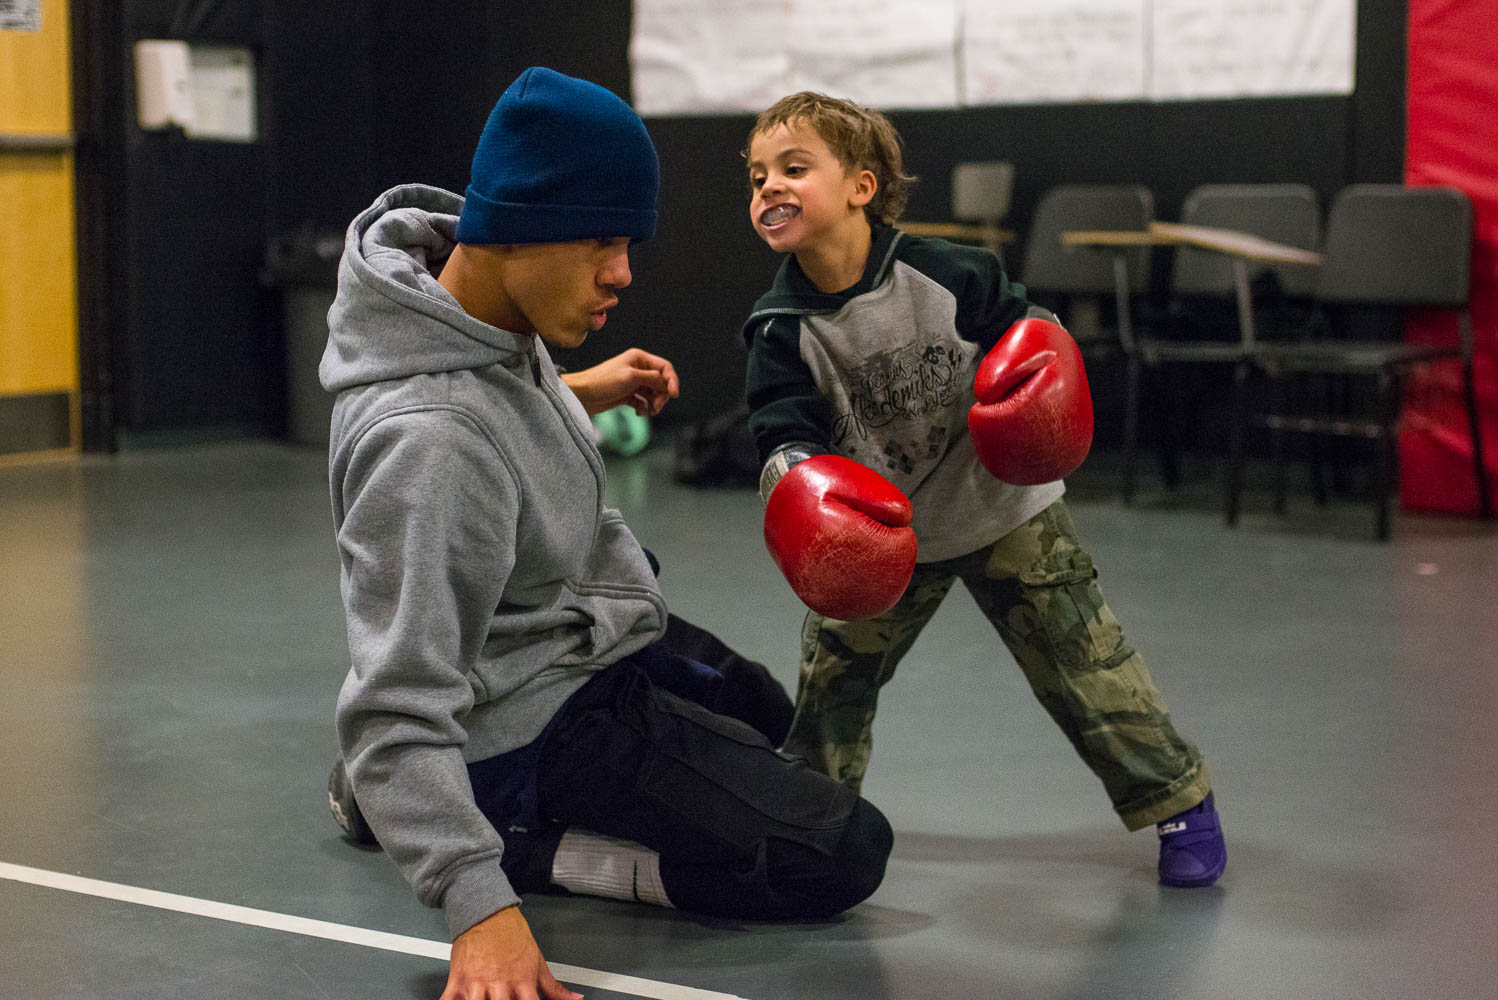 The boxing program serves as a community hub for youth in Jersey City.